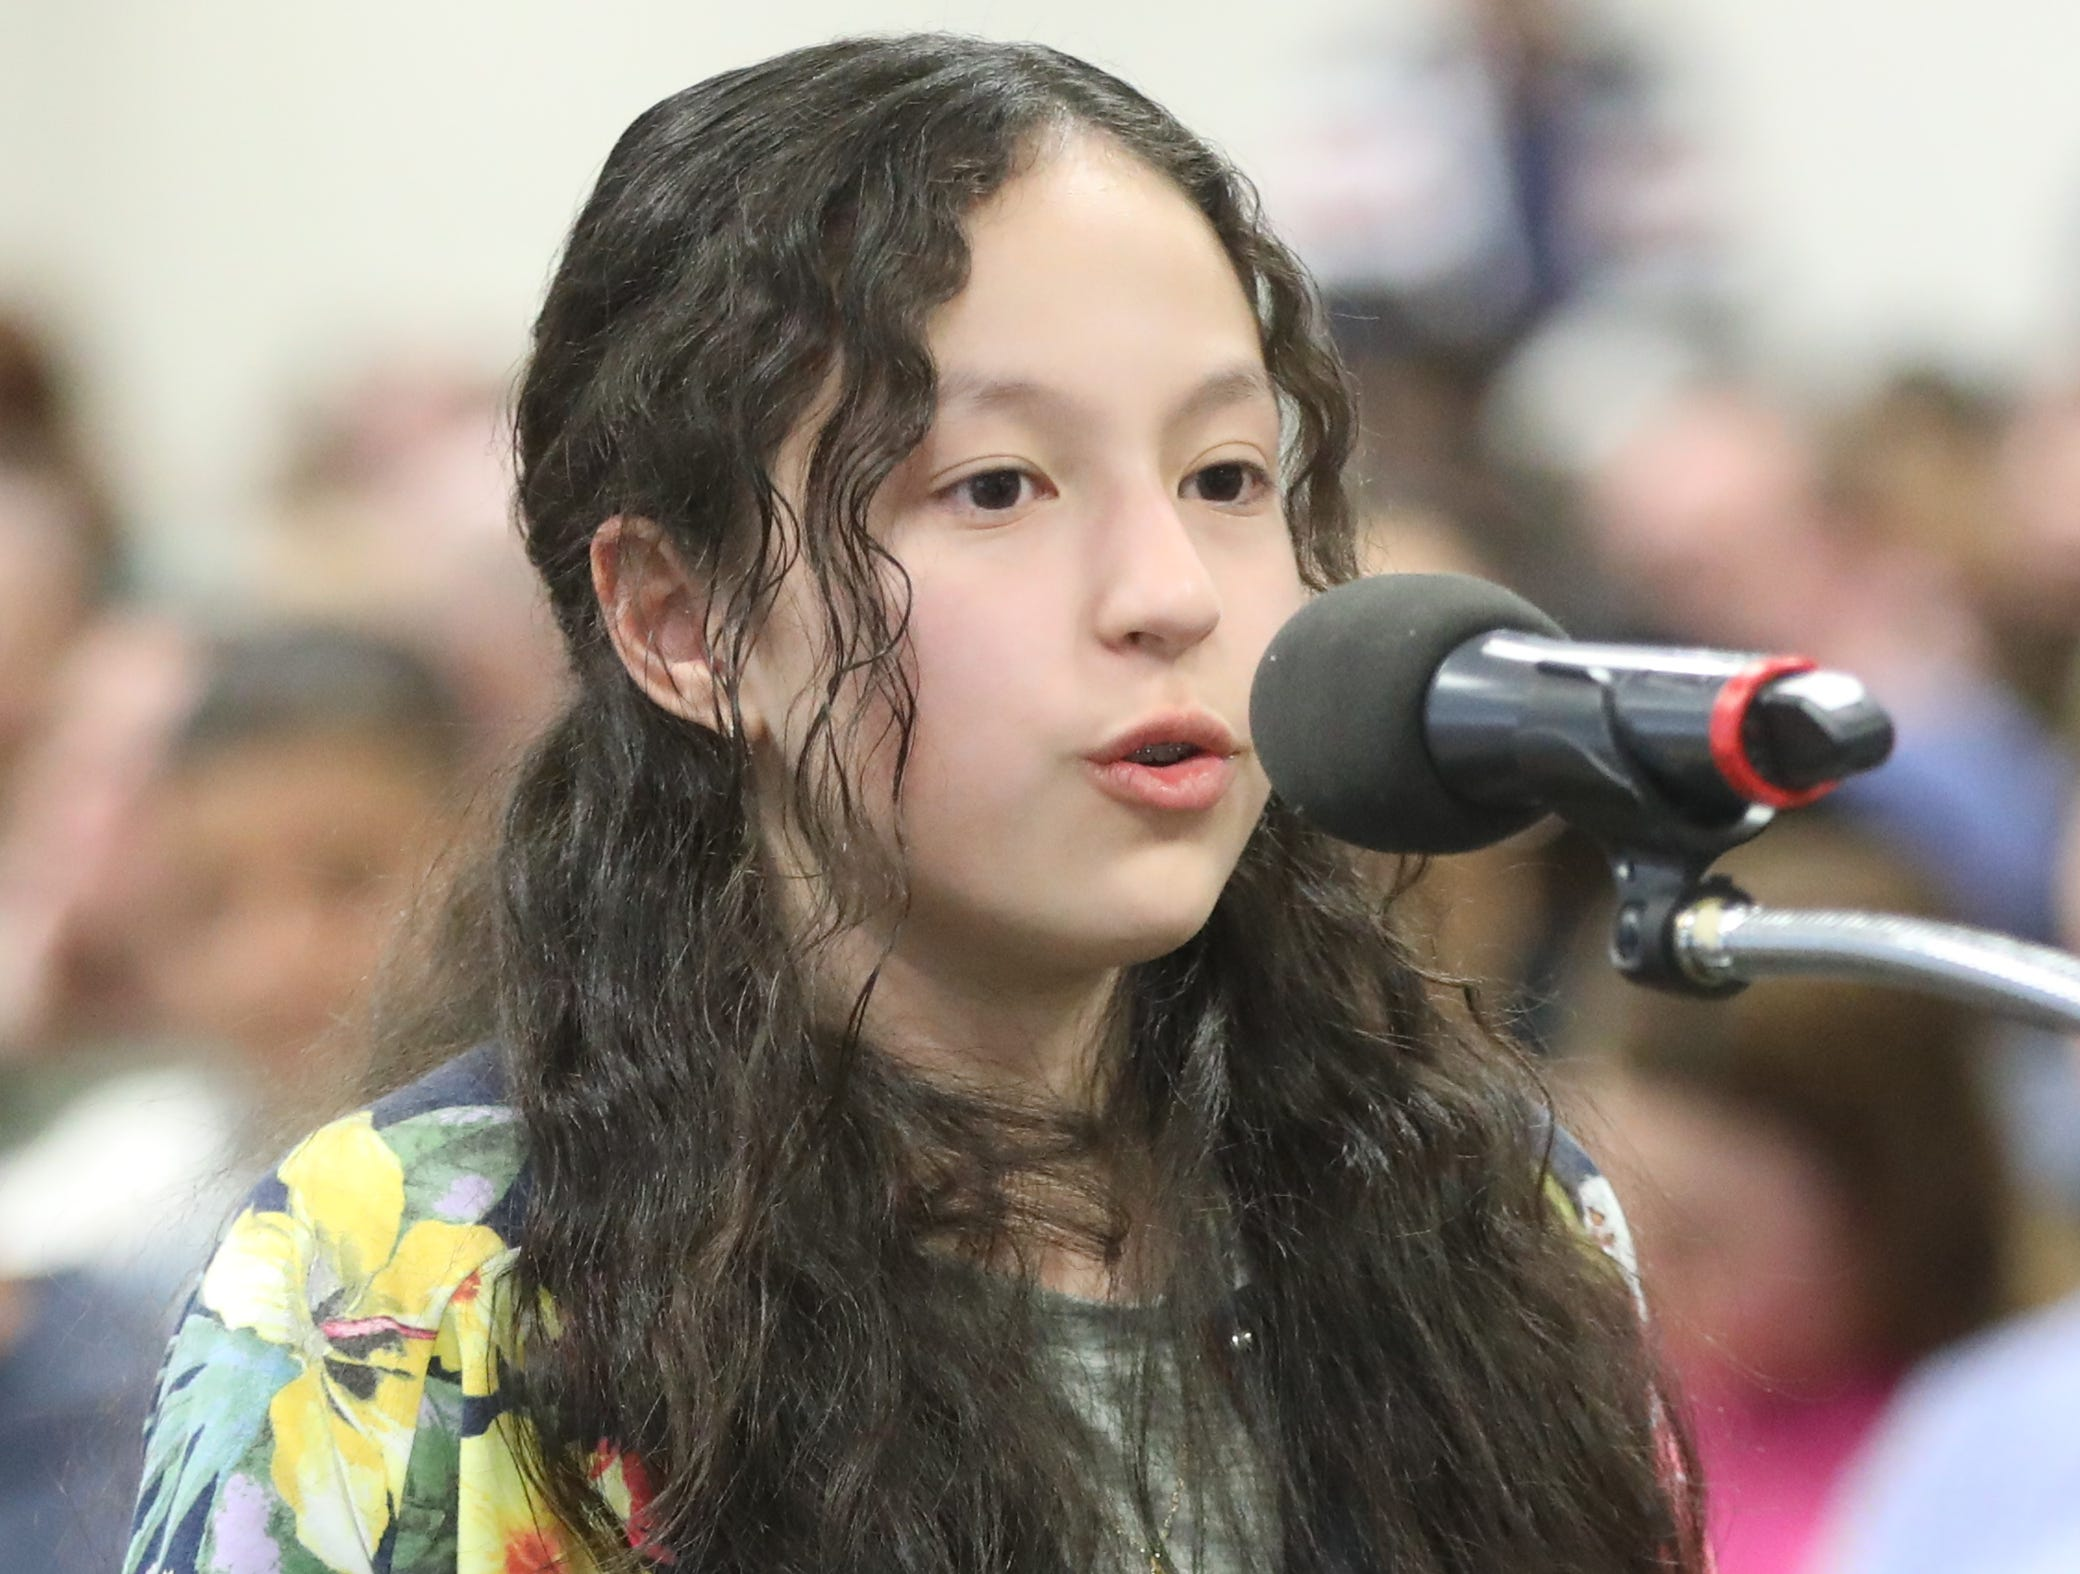 Zadie Castellanos, of Rutherford, competes in the first round of the 2019 North Jersey Spelling Bee, in Paramus. Thursday, March 14, 2019